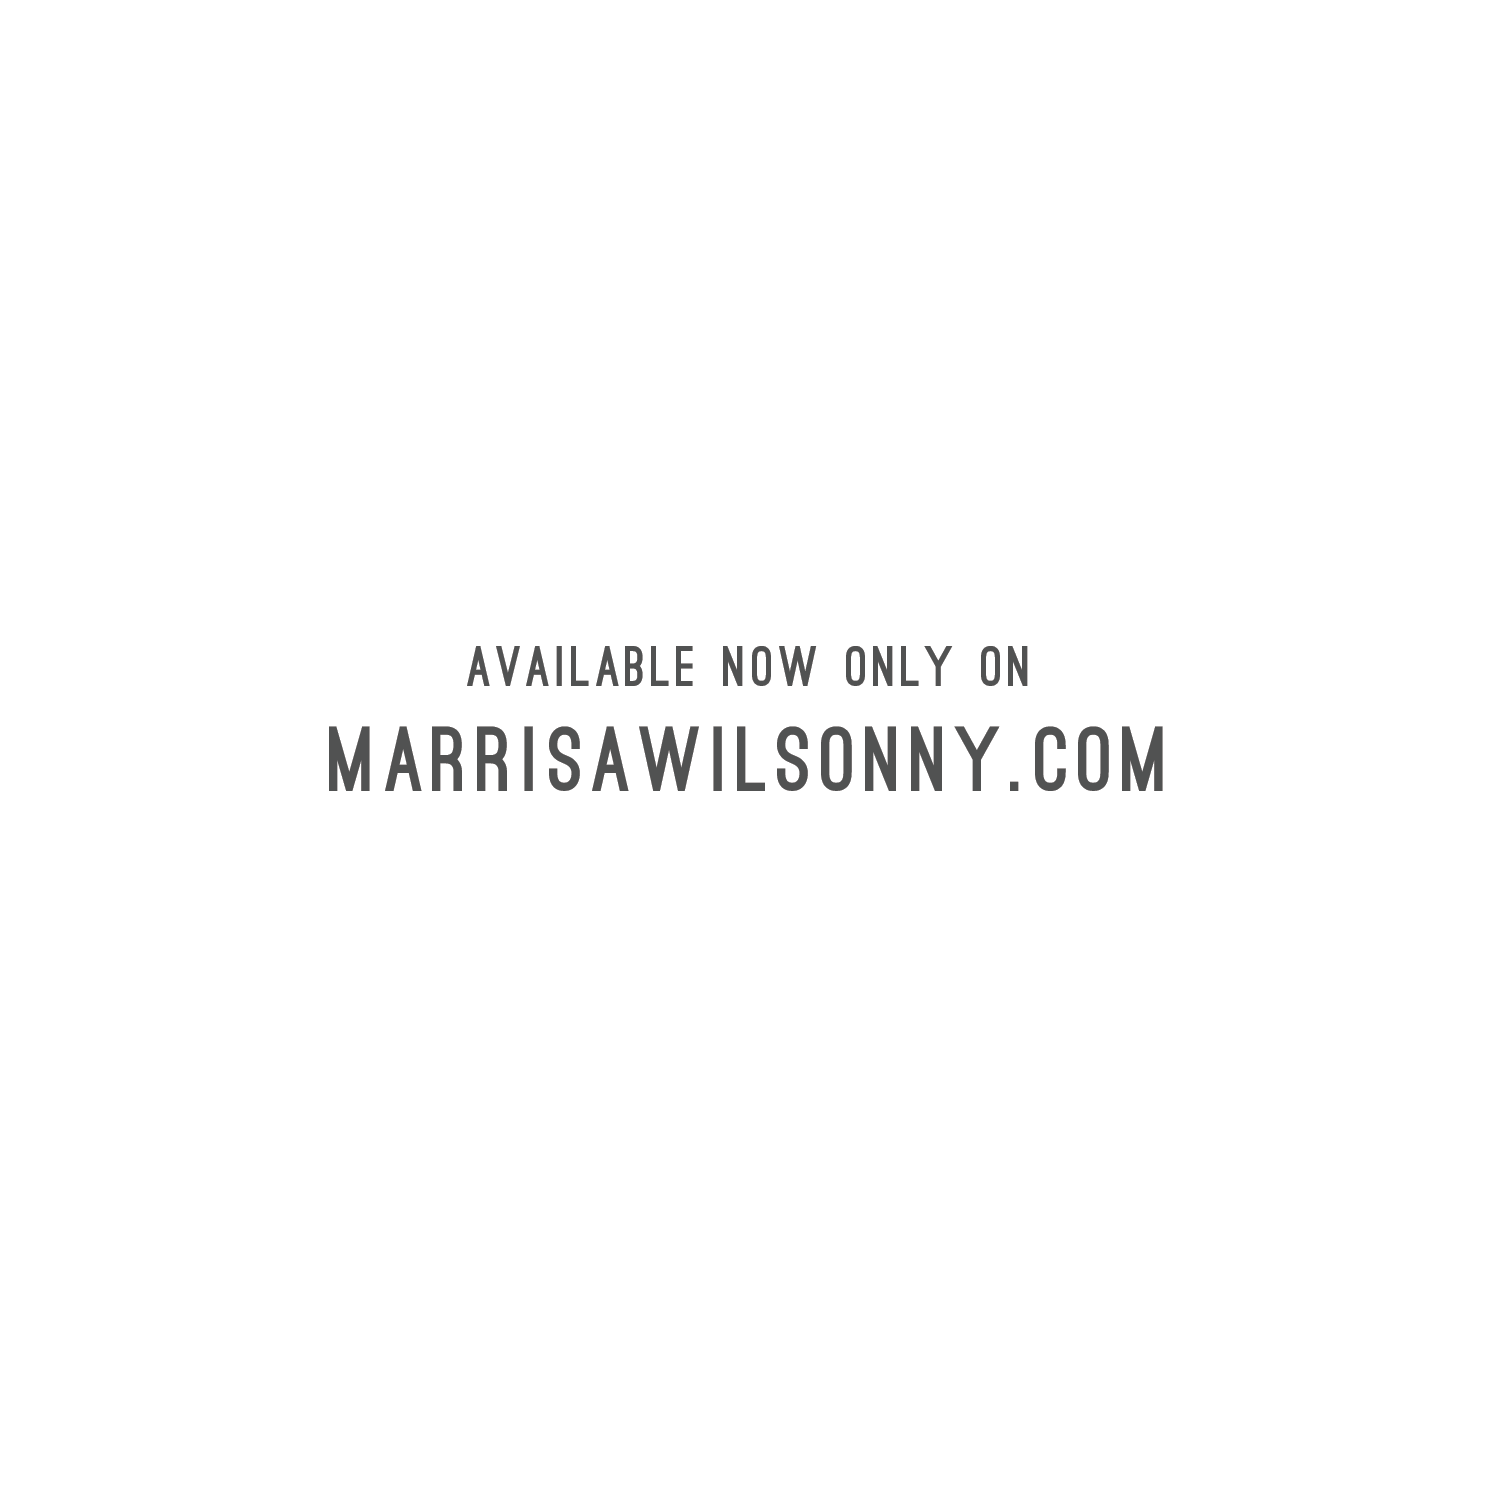 www.marrisawilsonny.com.png